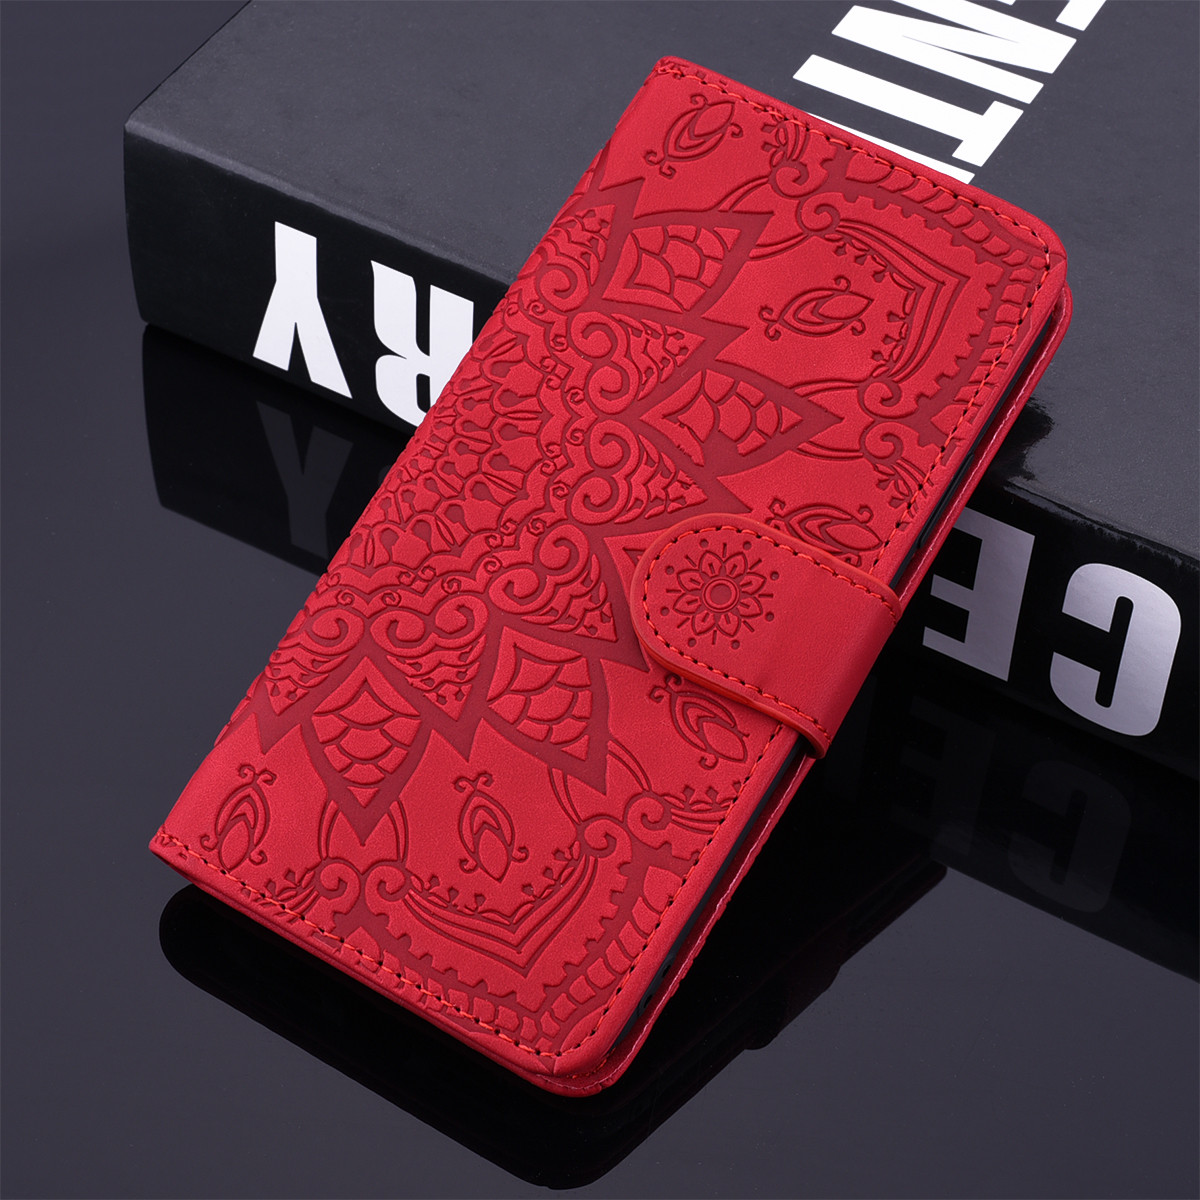 Leather Wallet Phone Case For IPhone 11 Pro Max X XR XS MAX 6 6S 7 8 Plus Card Slot Flip Case Cover For IPhone 5 5S SE Stand Bag